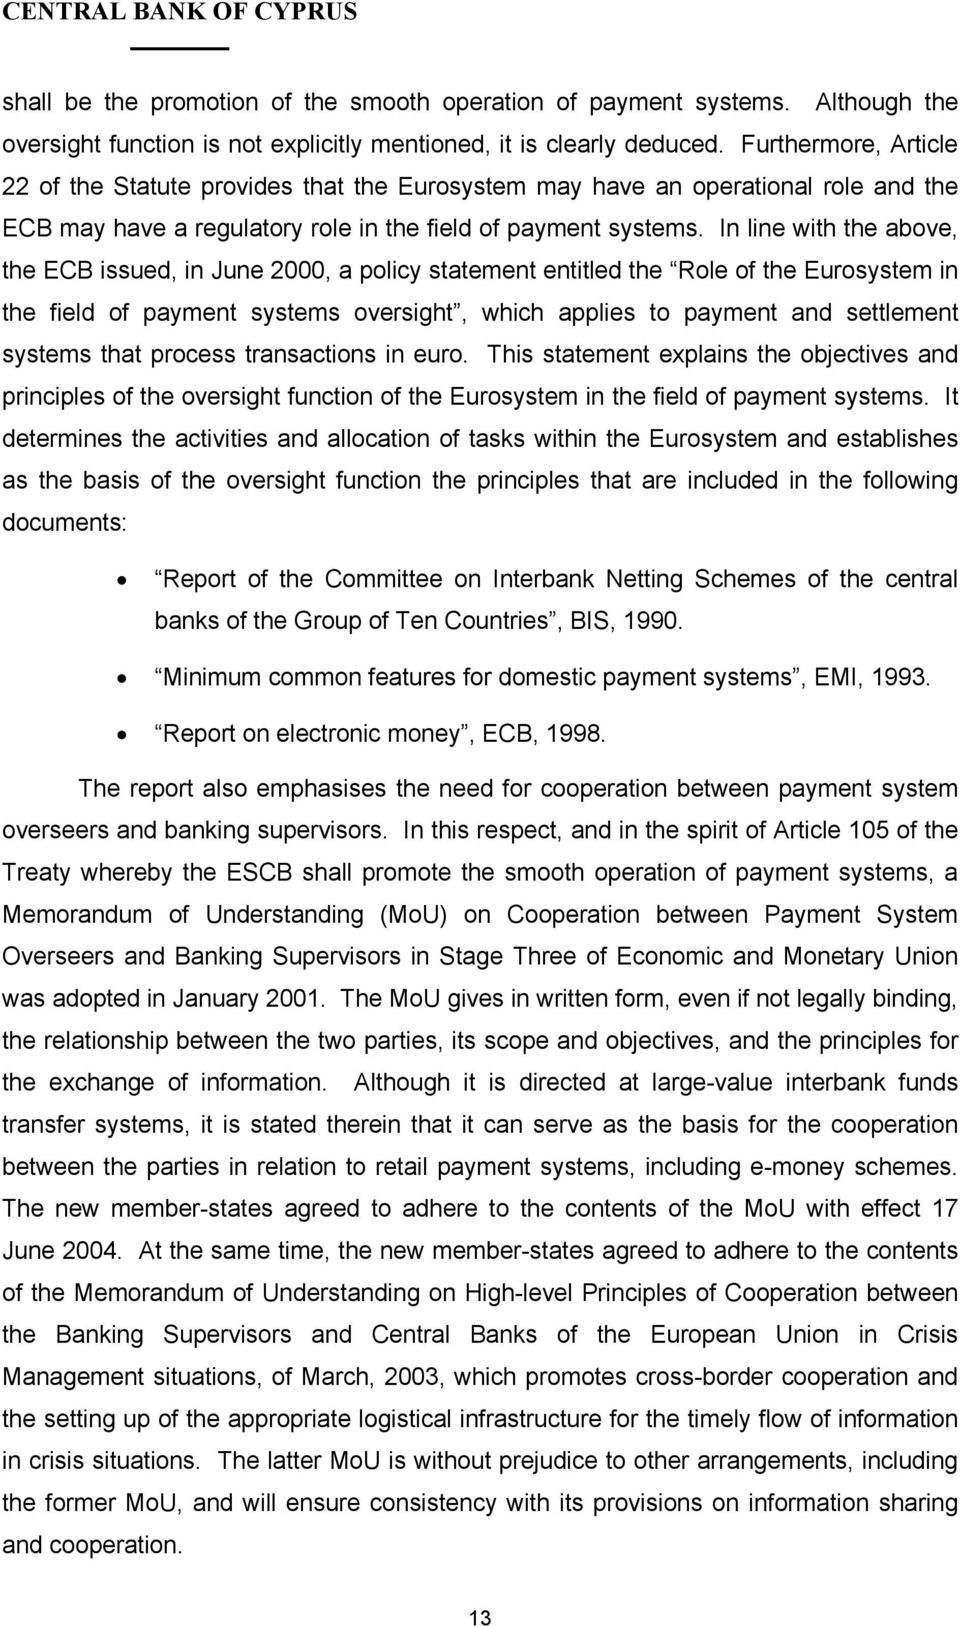 In line with the above, the ECB issued, in June 2000, a policy statement entitled the Role of the Eurosystem in the field of payment systems oversight, which applies to payment and settlement systems